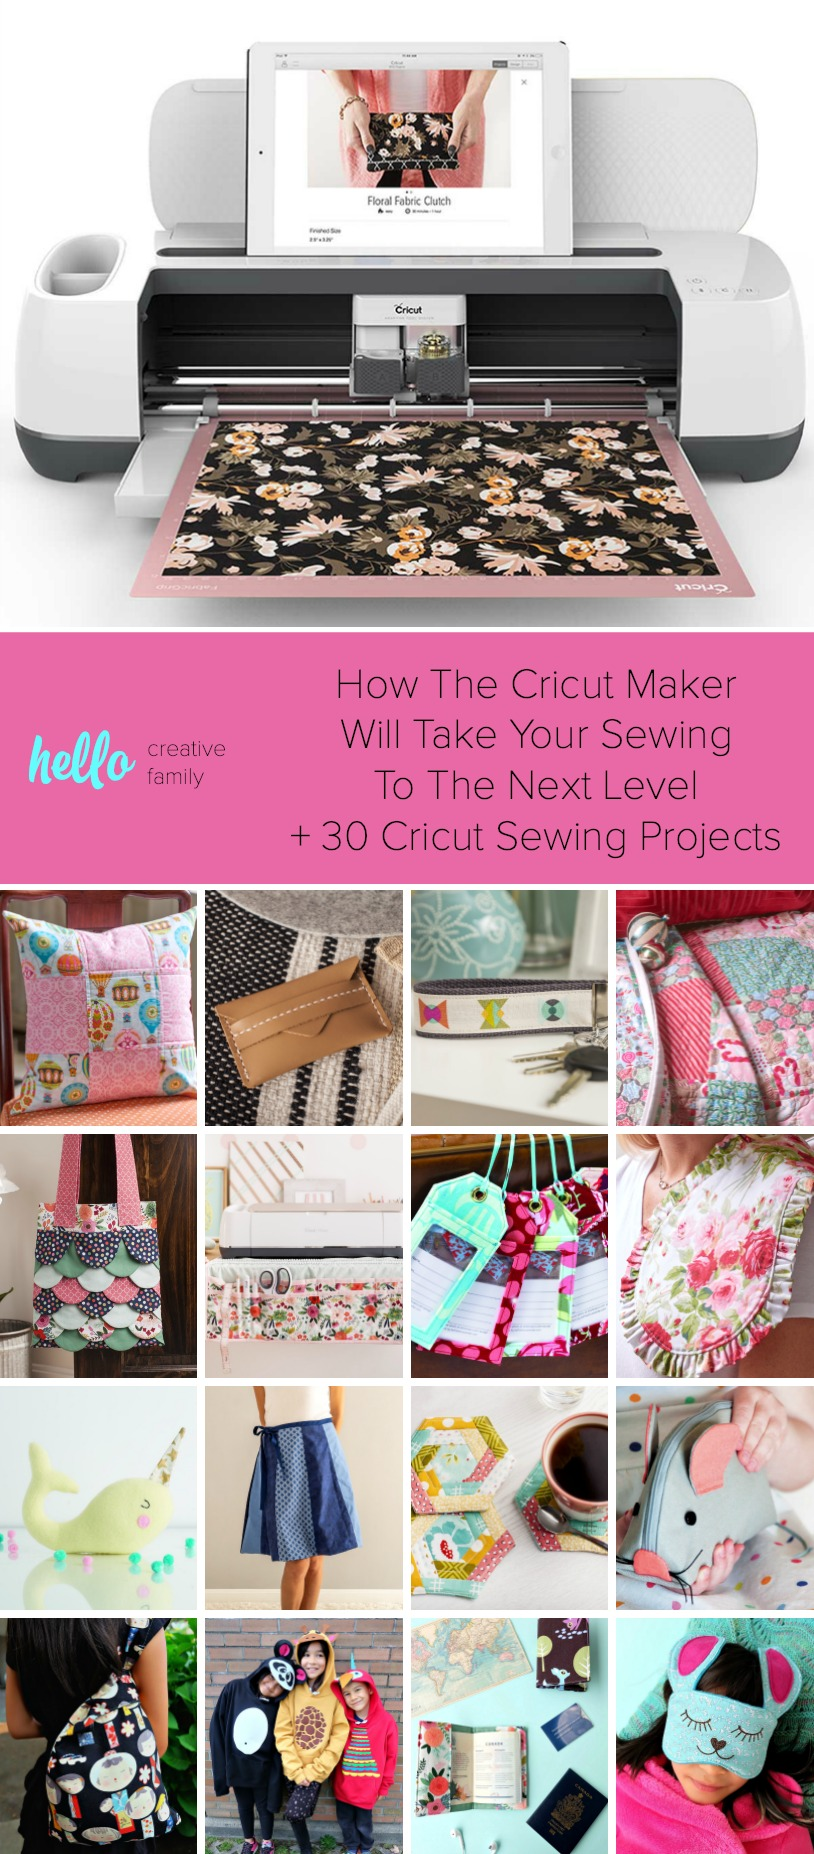 How The Cricut Maker Will Take Your Sewing To The Next